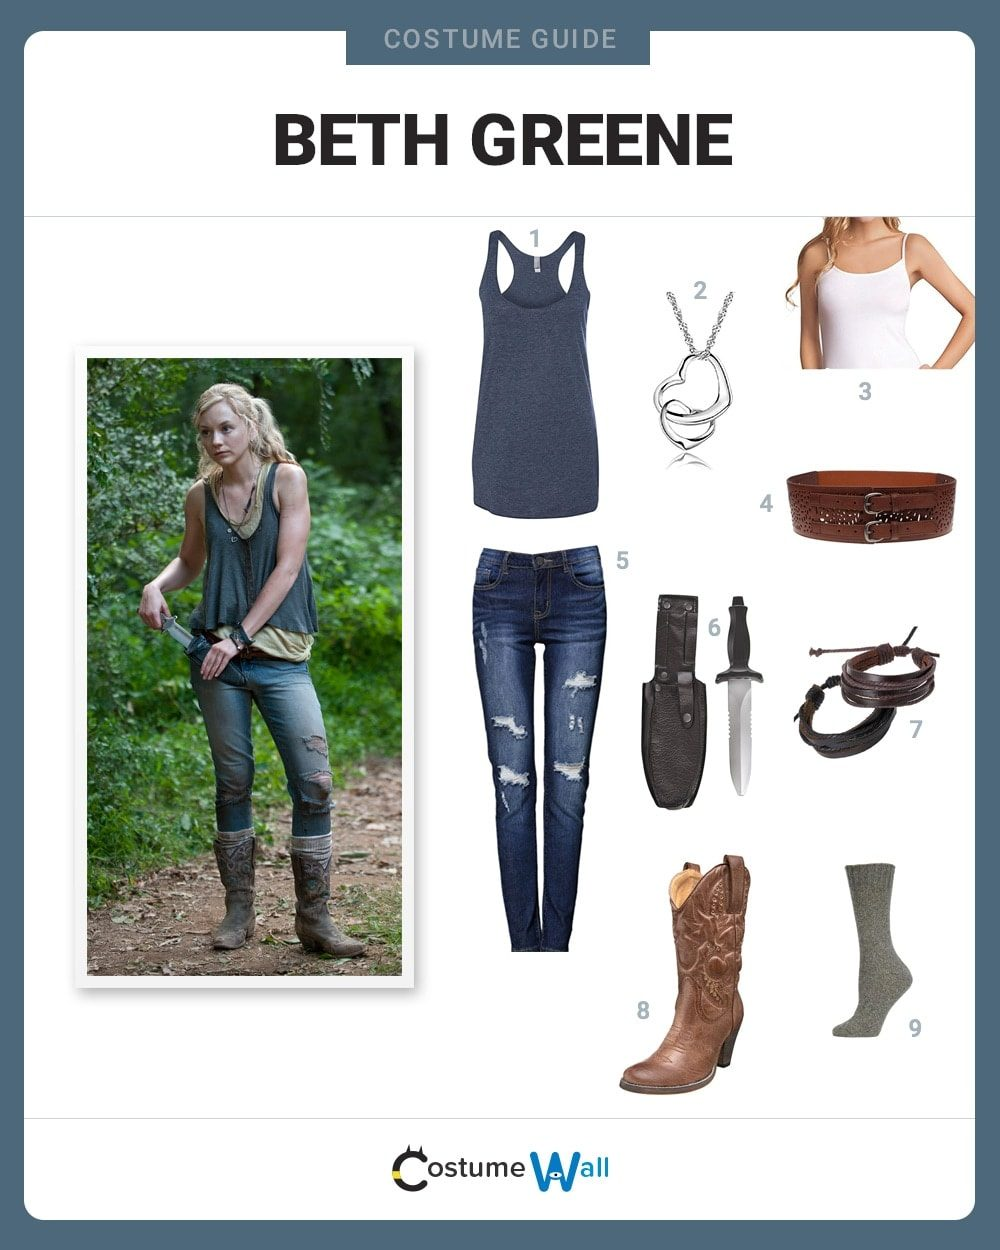 Beth Greene Costume Guide